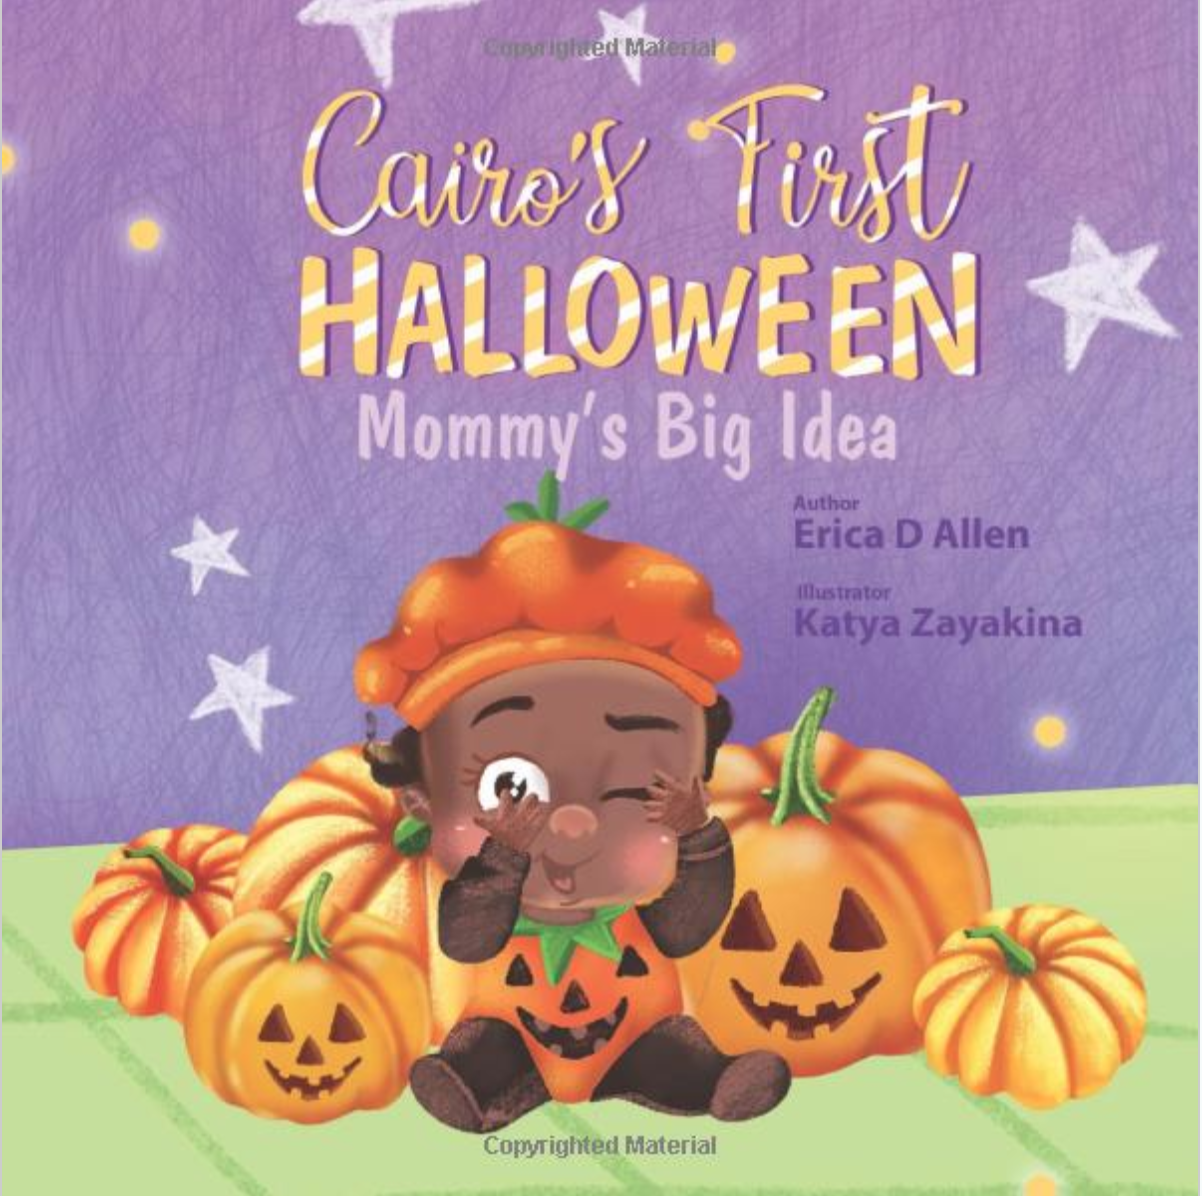 Cairo's First Halloween: Mommy's Big Idea